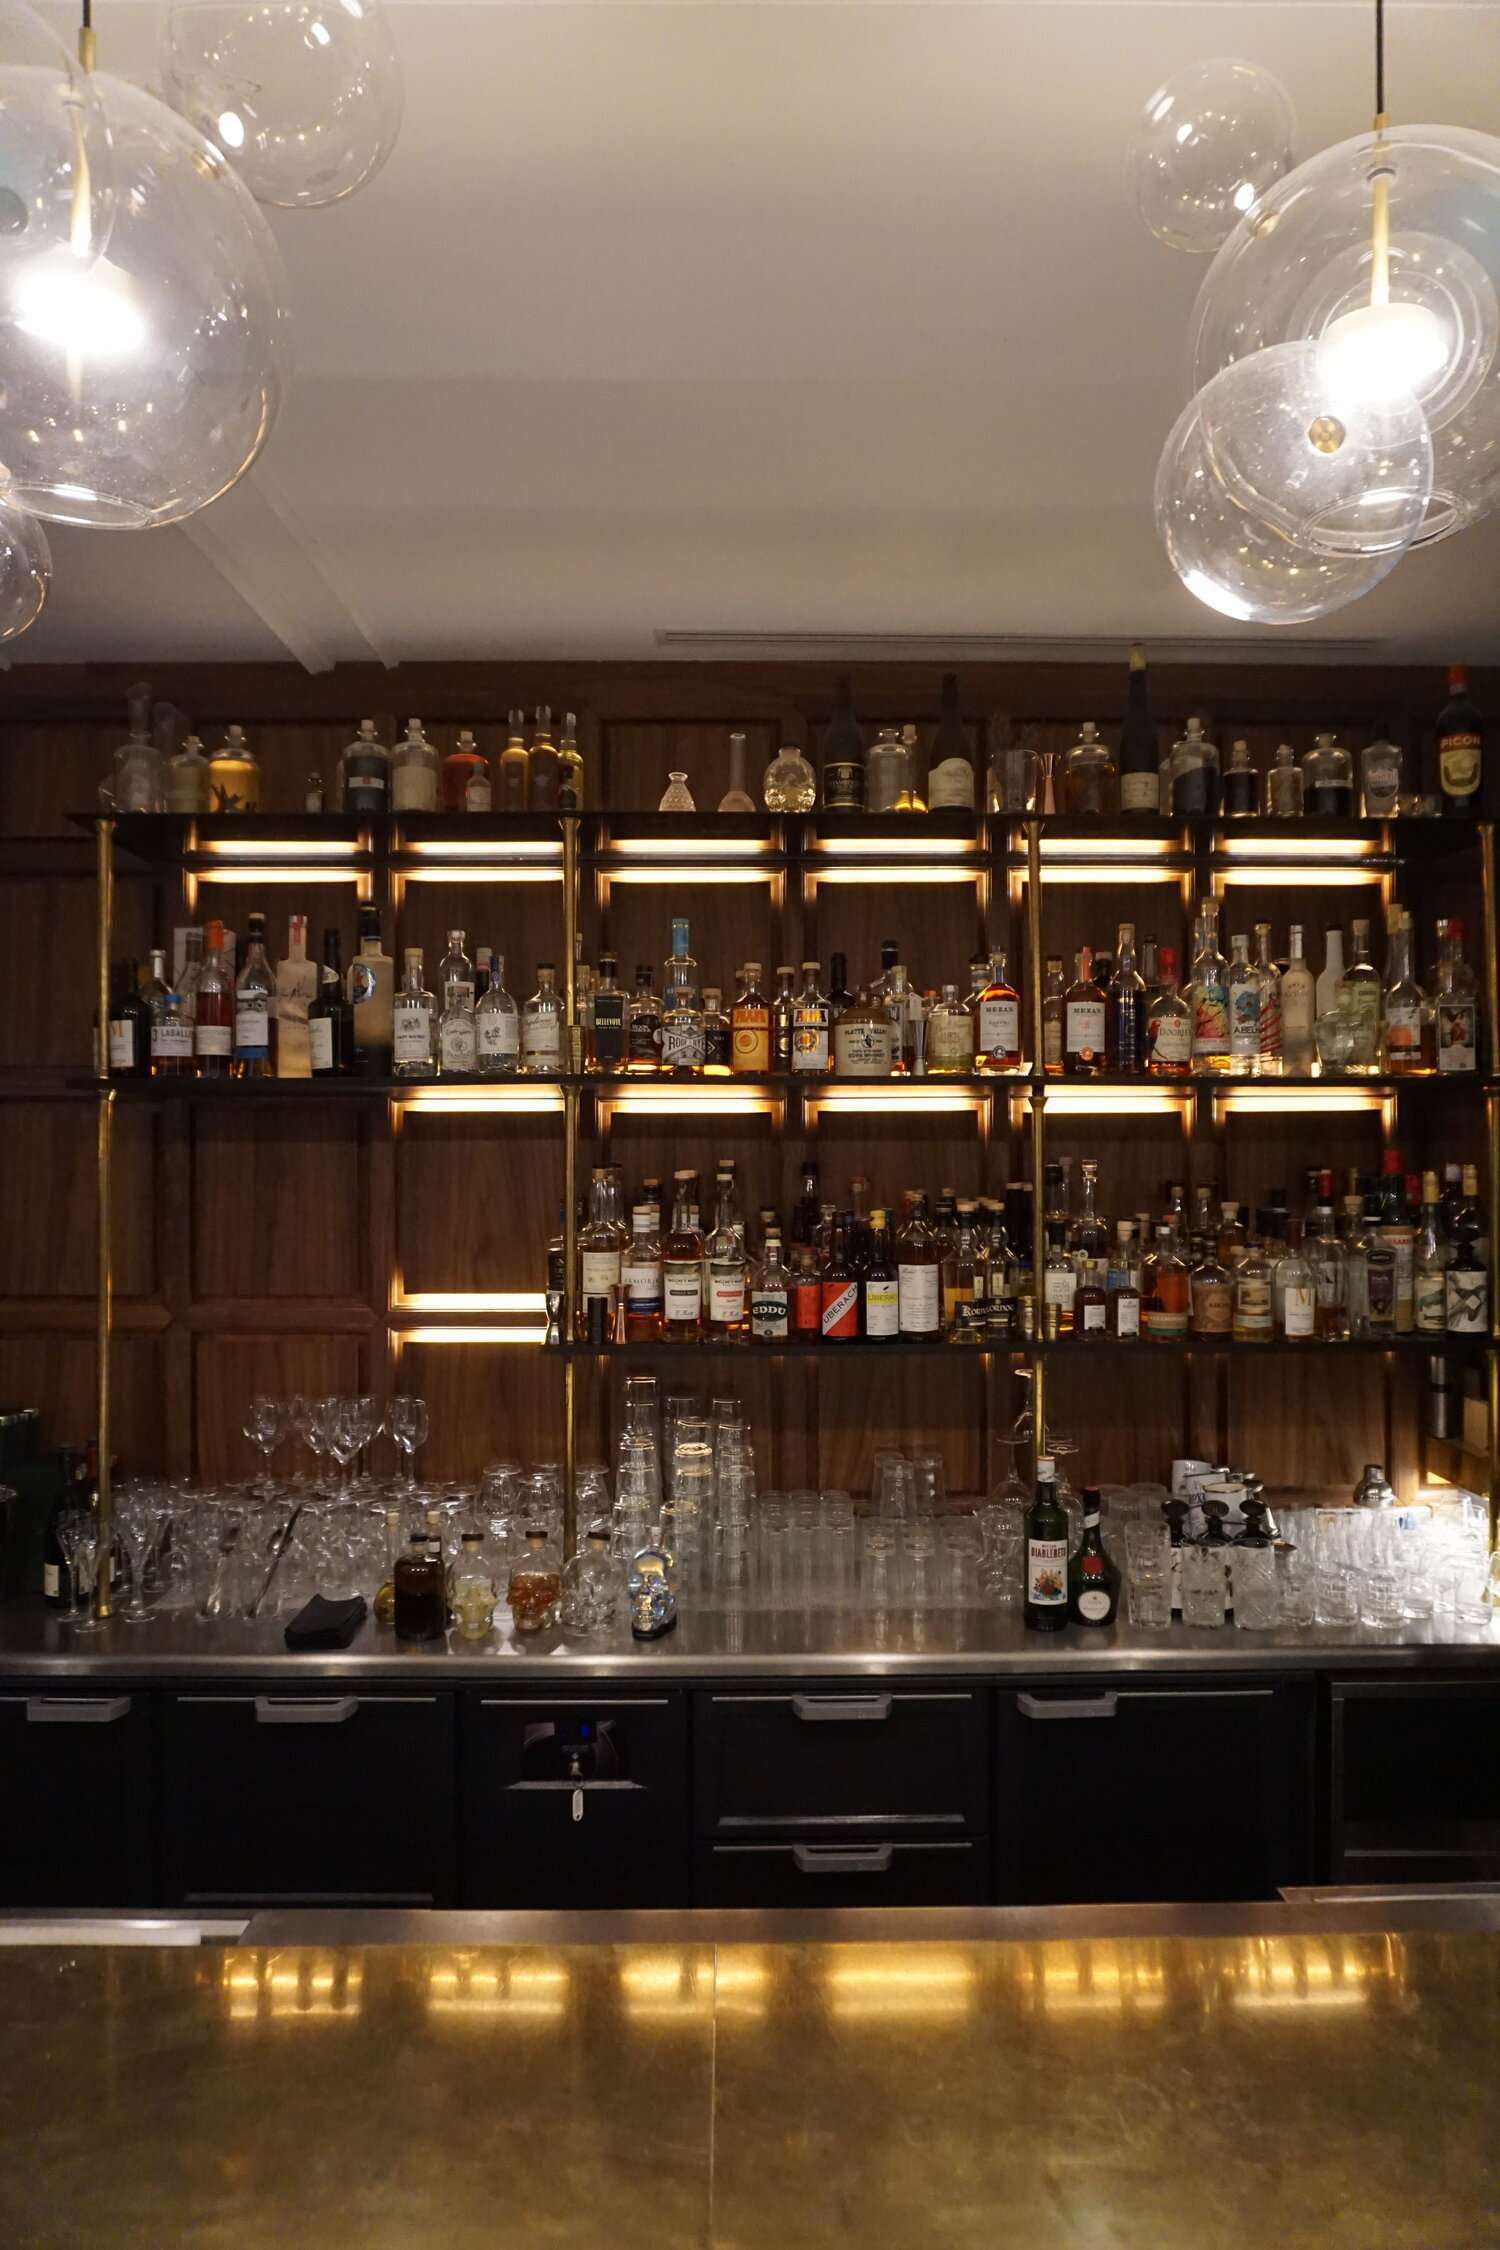 shelves filled with bottles behind the bar at Le Hotel Parister in Paris